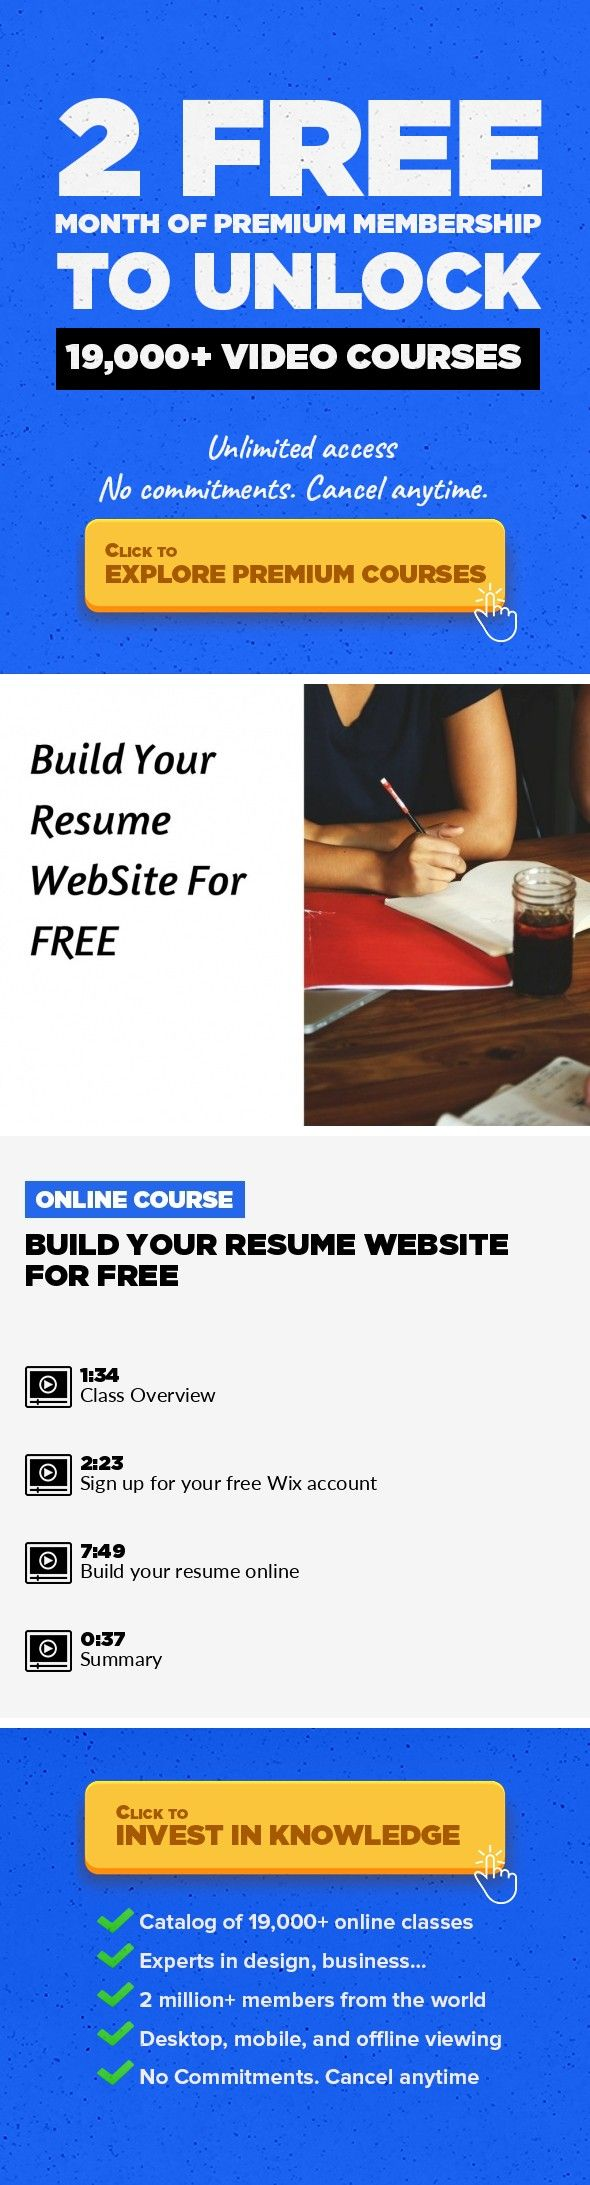 How To Build A Resume Free Build Your Resume Website For Free Entrepreneurship Business Human .